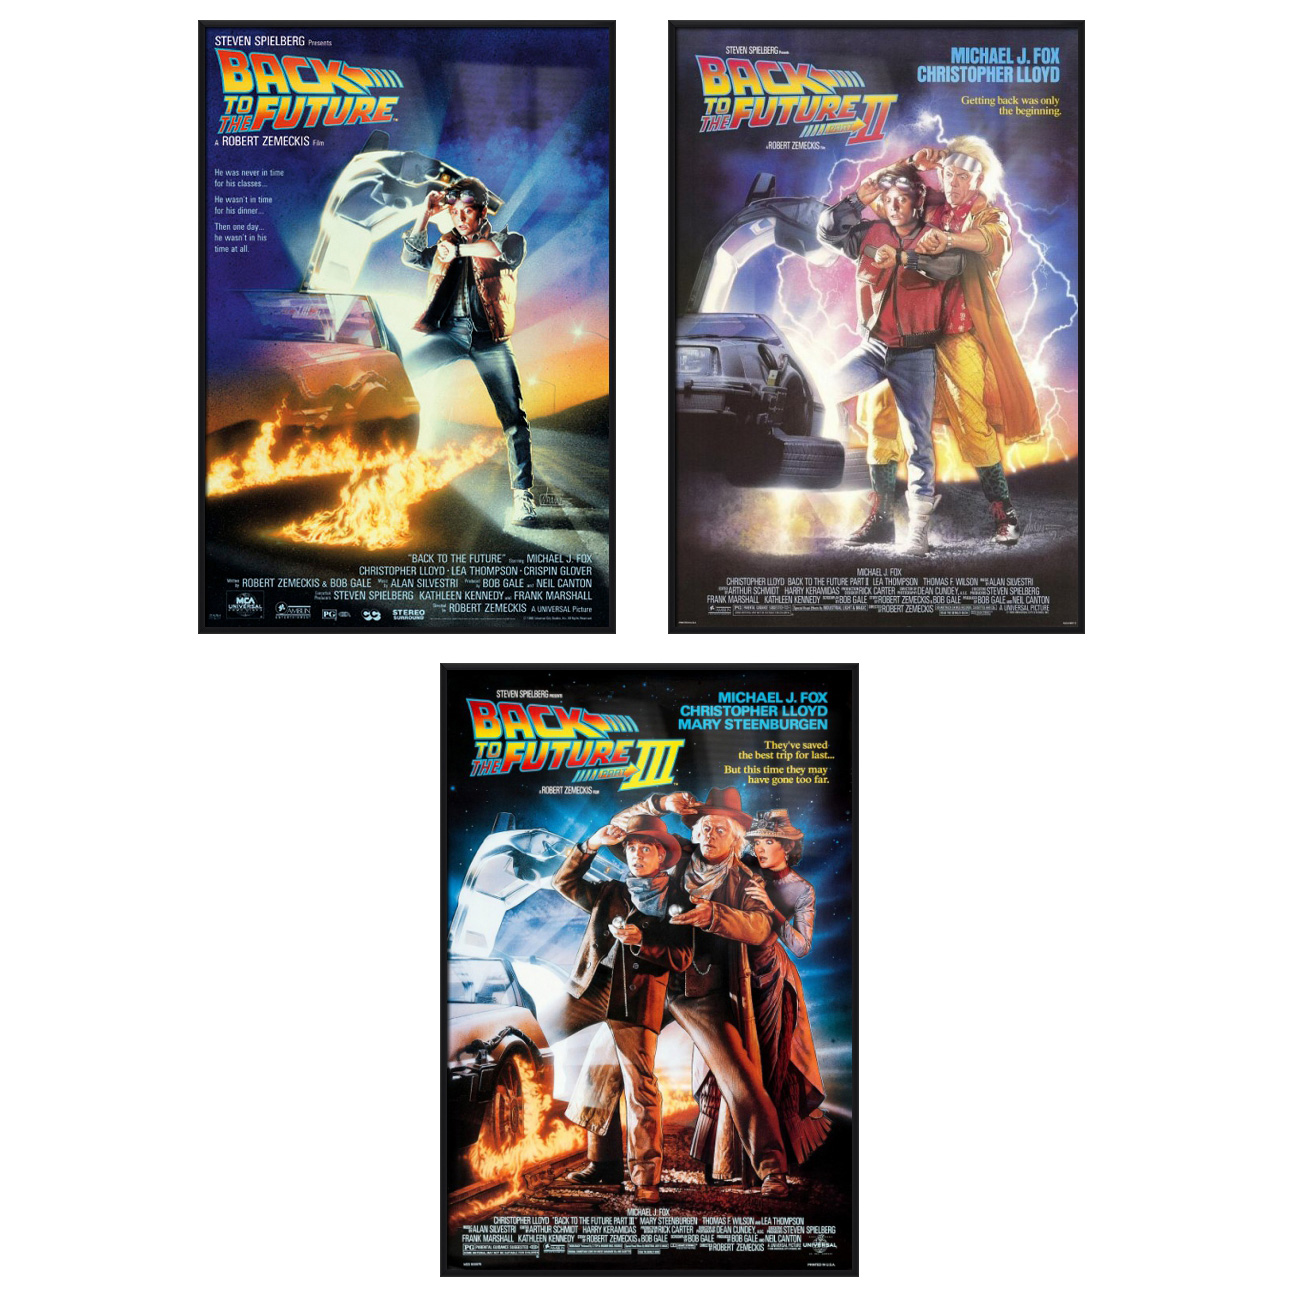 Back To The Future I, II, III Movie Poster Set (3 Full Size Movie Posters) (Size: 27'' x 40'' each) by